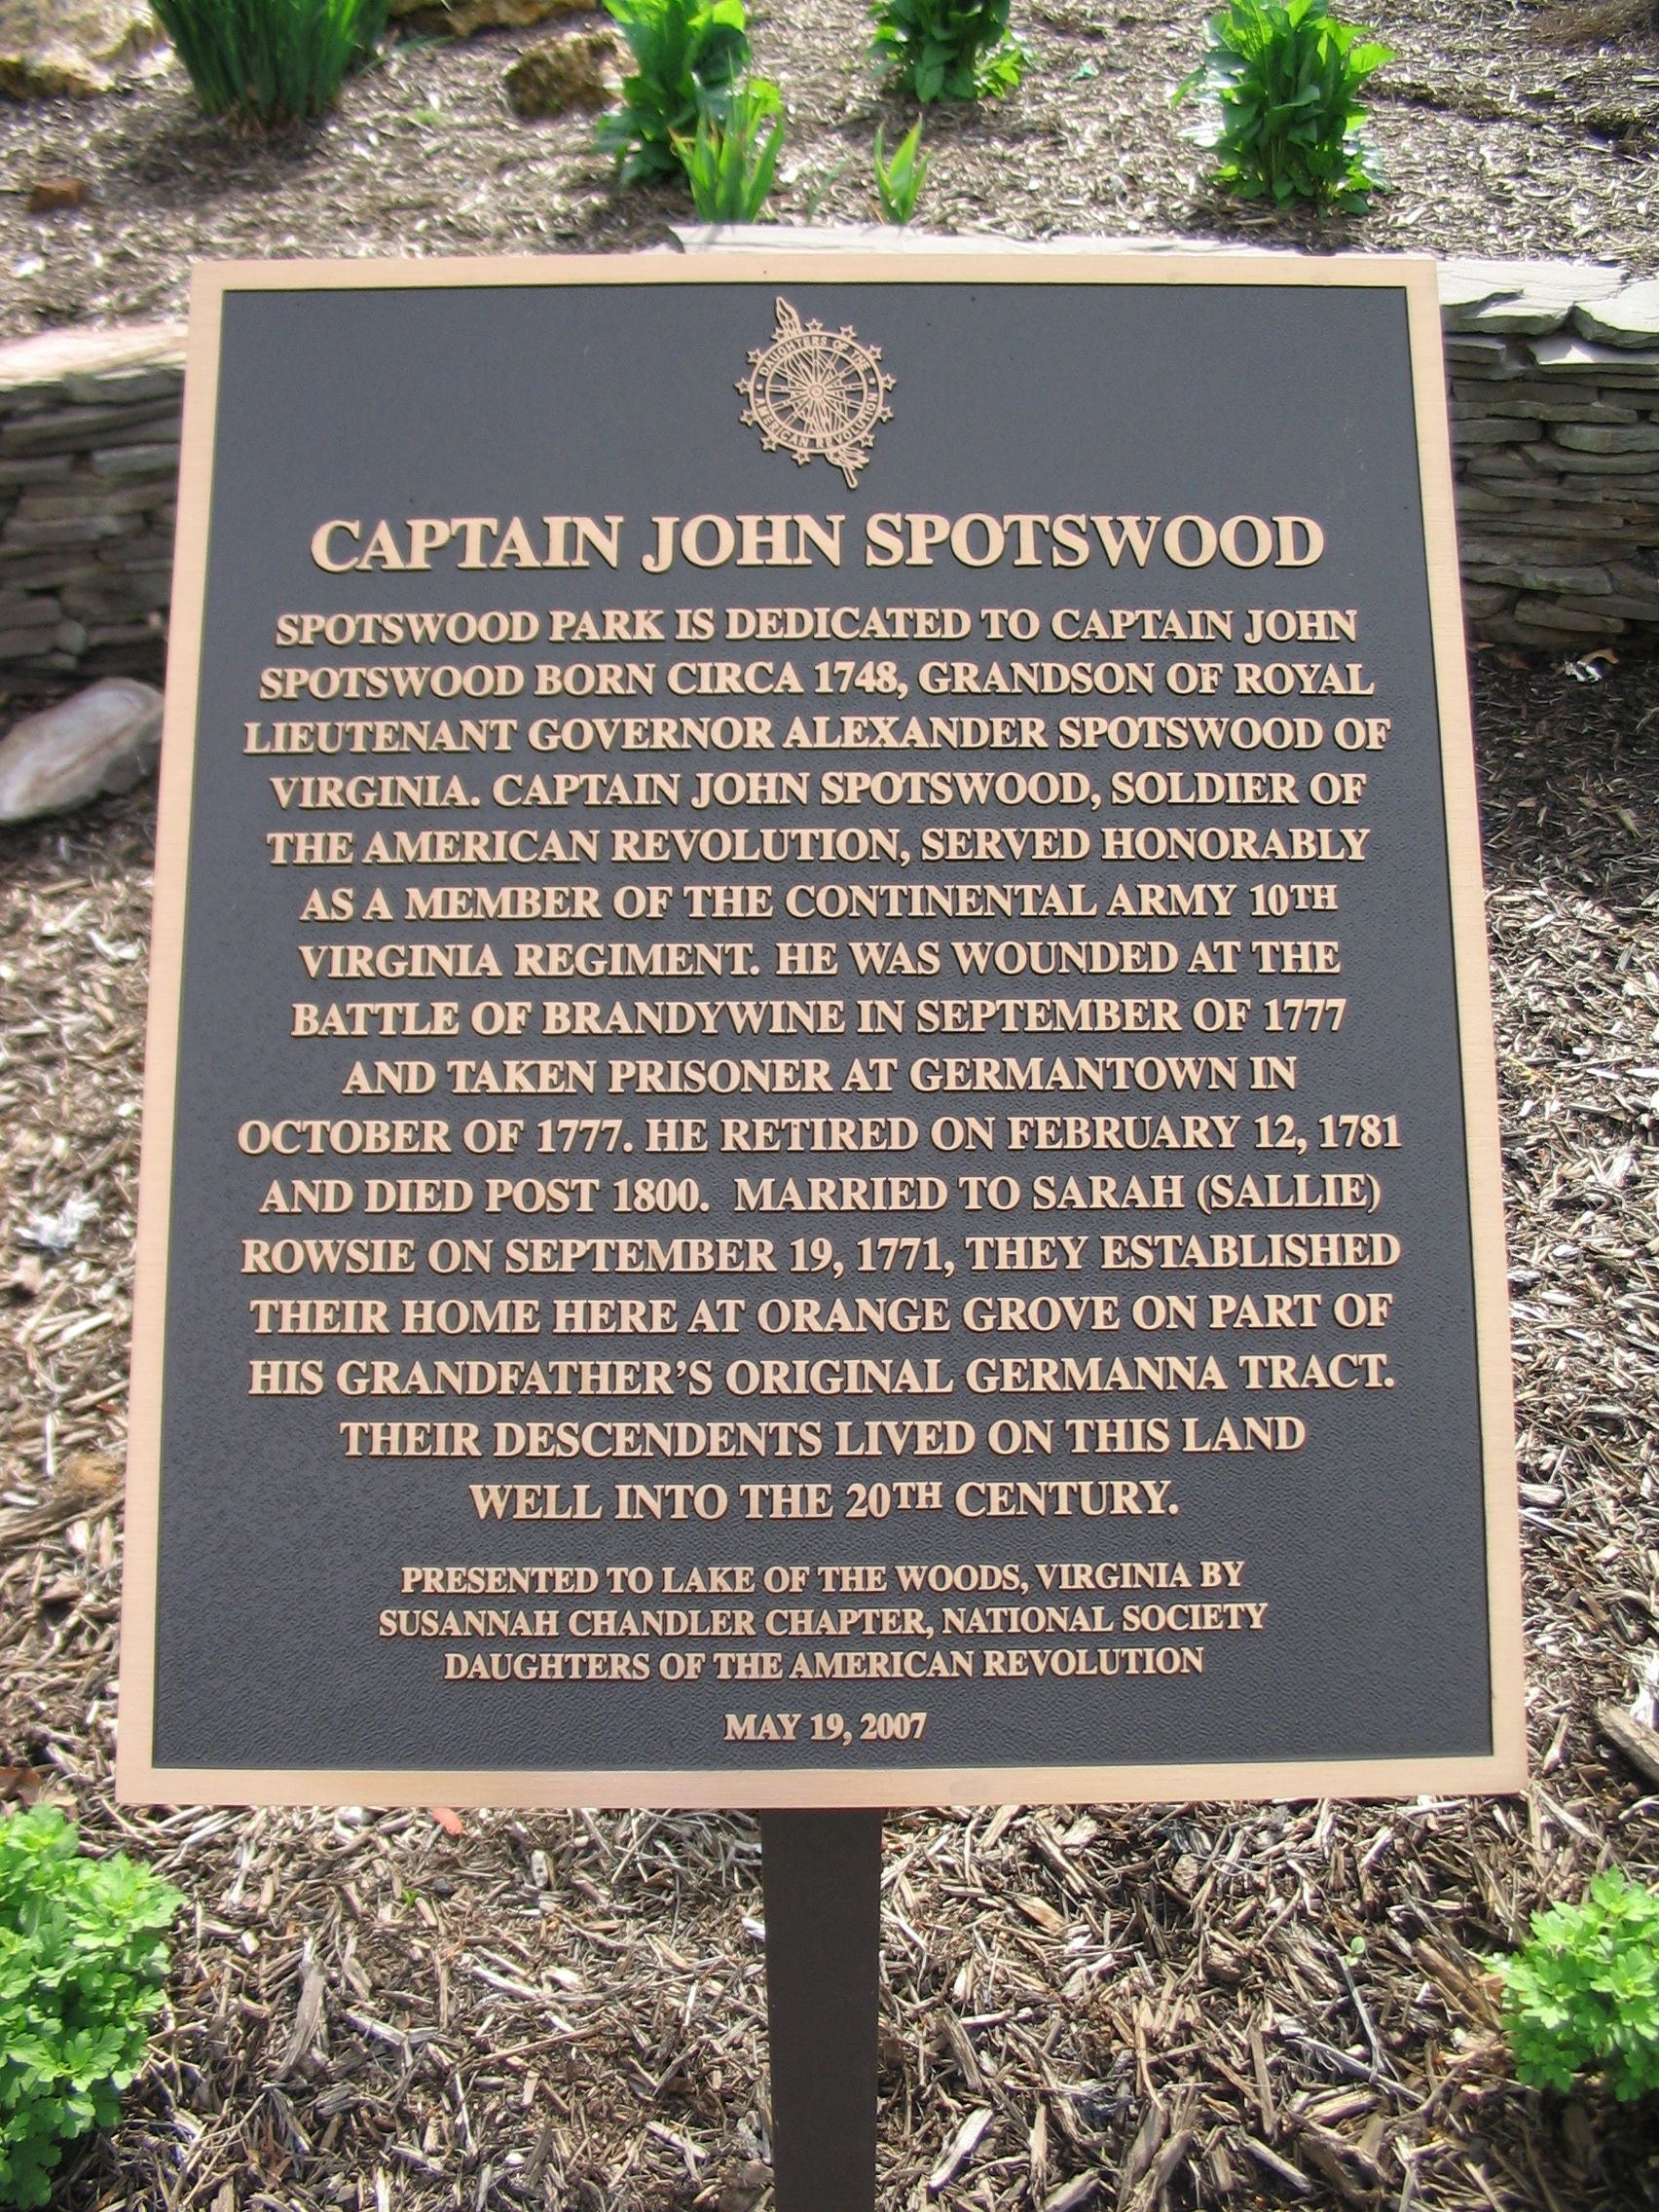 Historic Marker placed by Susannah Chandler Chapter NSDAR. Photo courtesy of the Historic Marker Database.